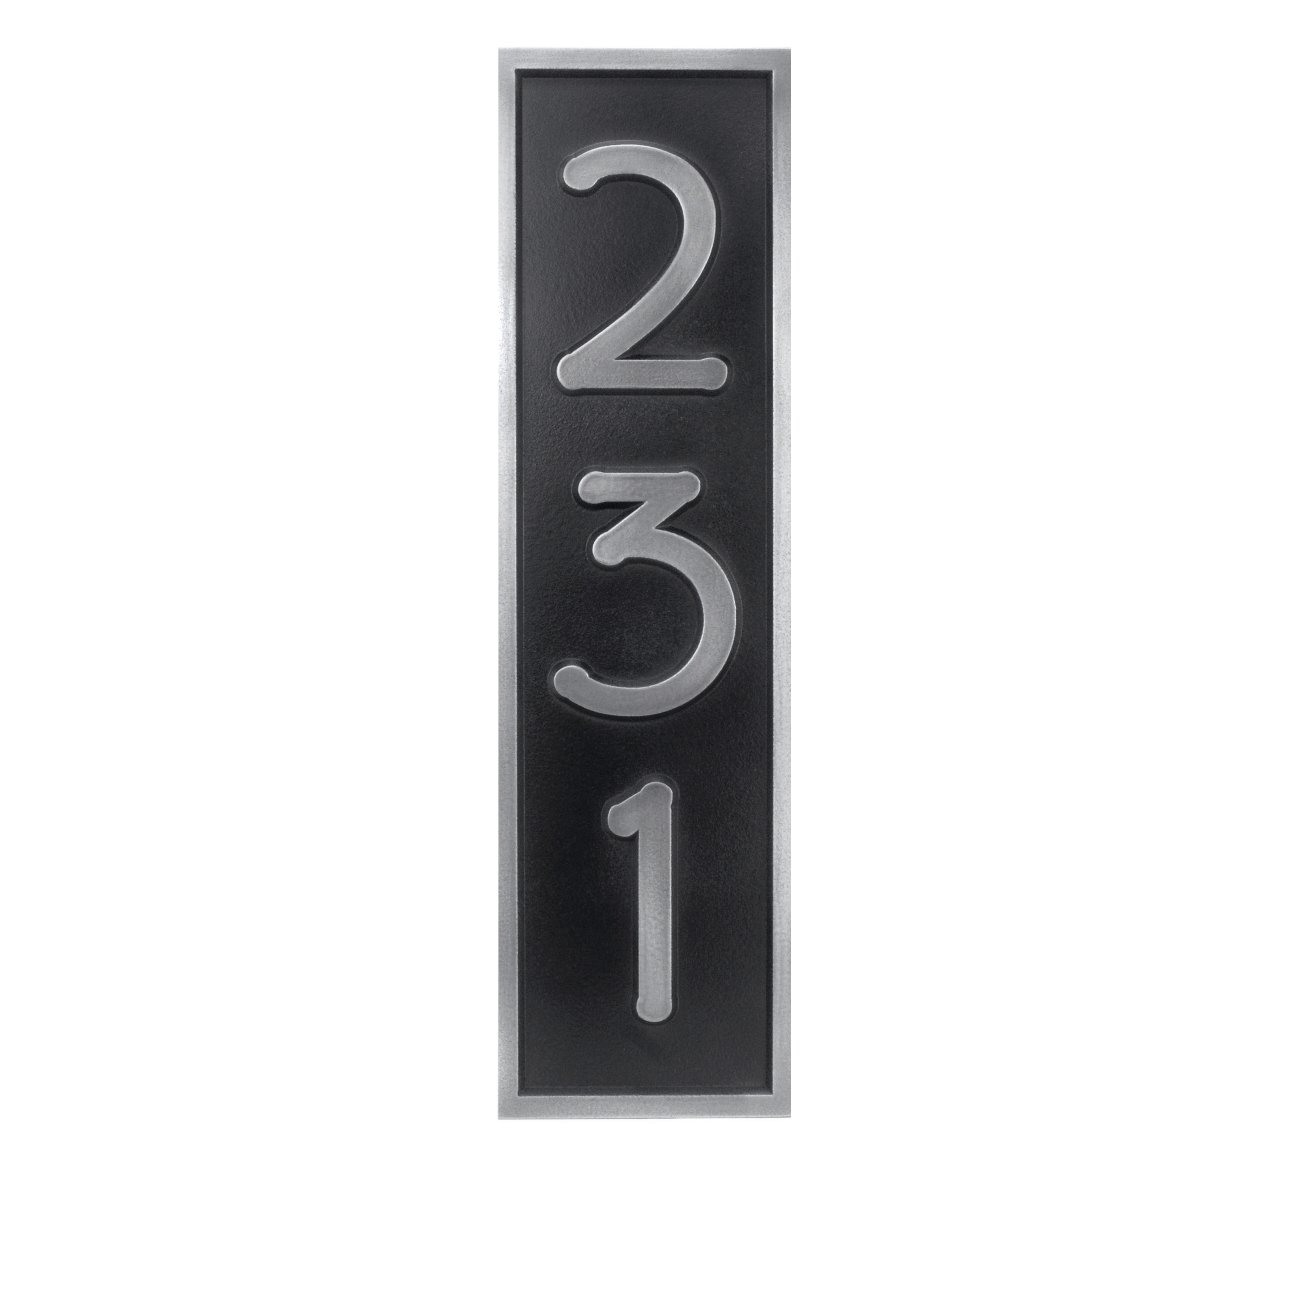 Prairie Style Vertical Home 3 Number Plaque 6.5x15 - USA Made - Raised Pewter Metal Coated